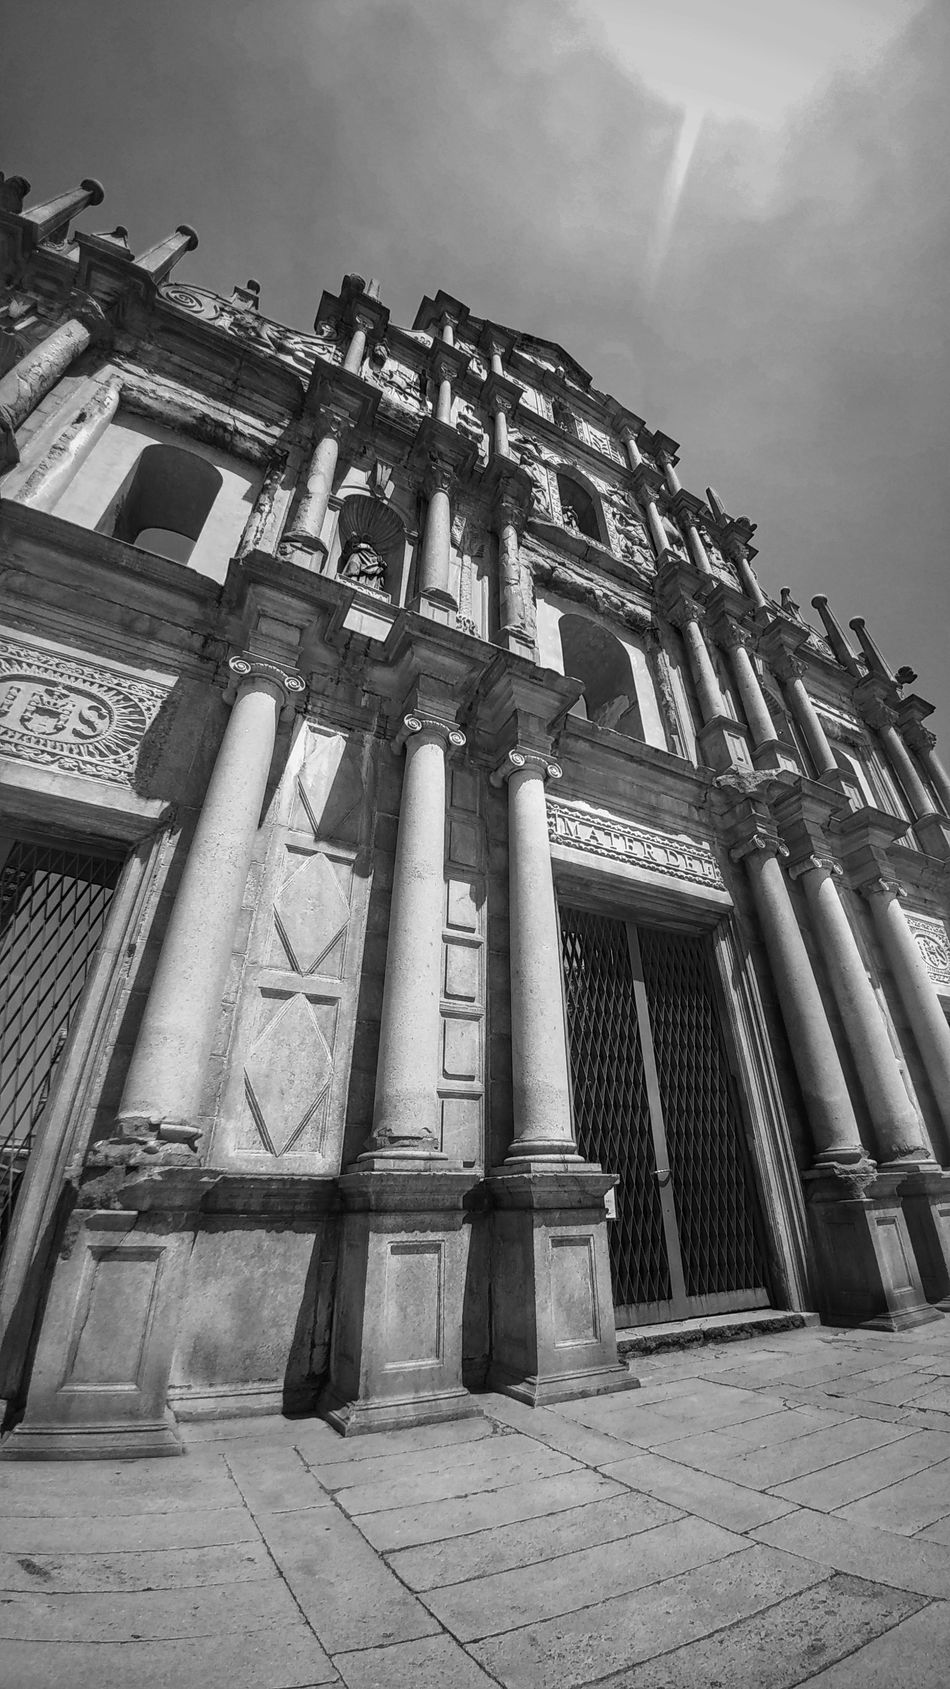 Architecture Built Structure Building Exterior Low Angle View History Sky Church Architectural Column Place Of Worship Day Outdoors Sunbeam Industry The Past Façade Obsolete Ancient Tall - High Monochrome Photography Monochromatic Monochrome Black And White Photography